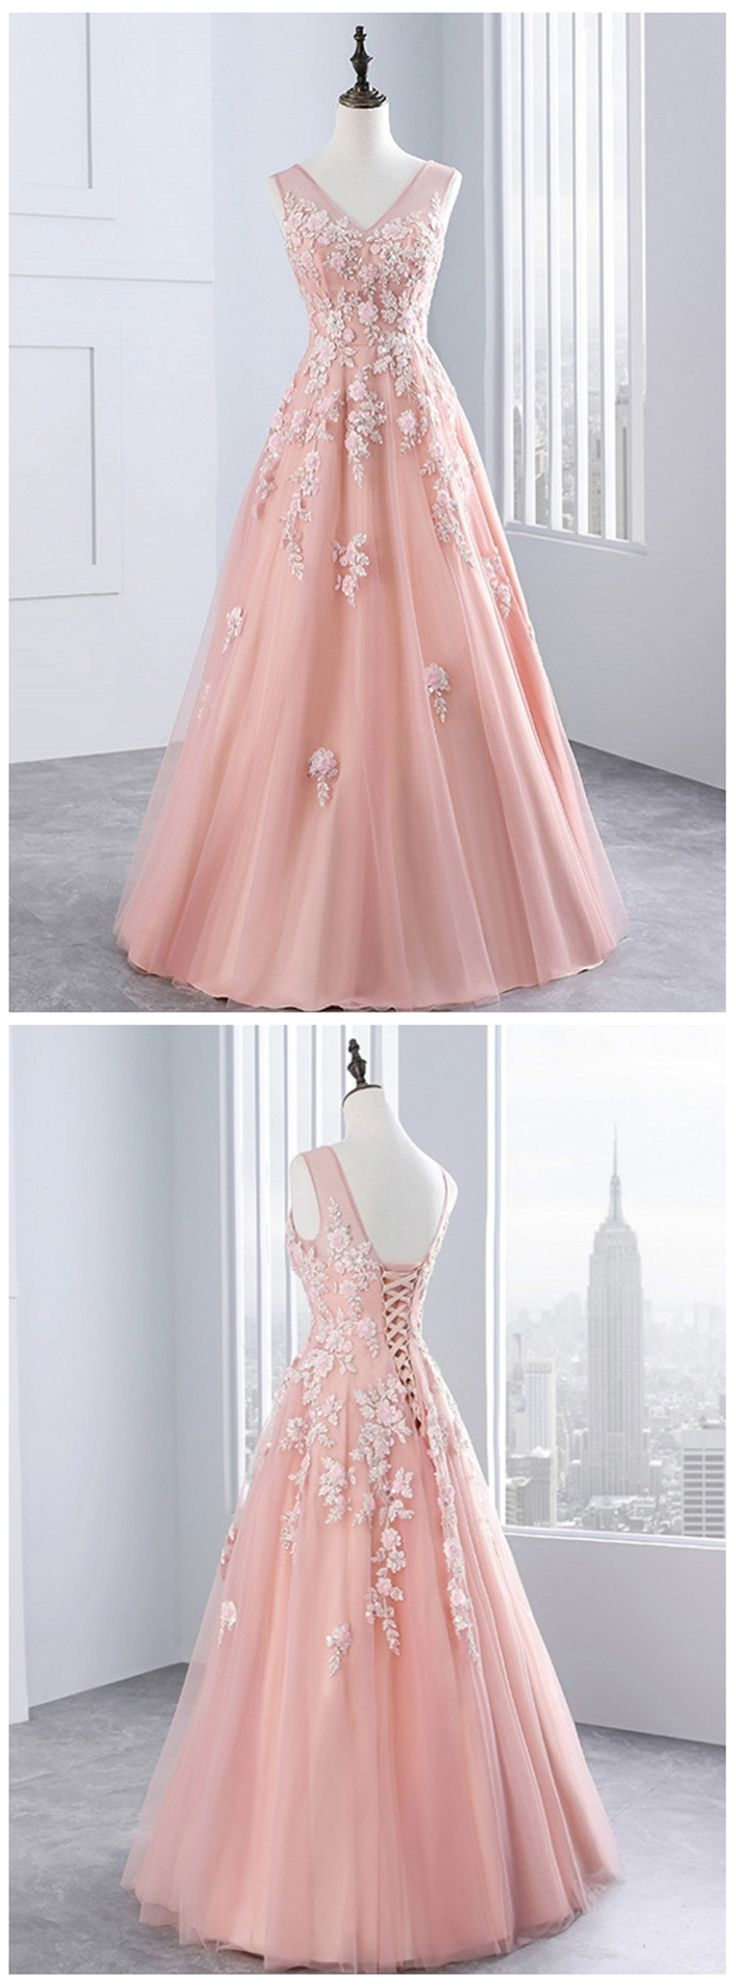 Sweet 16 Prom Dress, Cute Lace Appliqued Long Prom Dress for Teens #promdress #promdresses #prom #dress #gowns